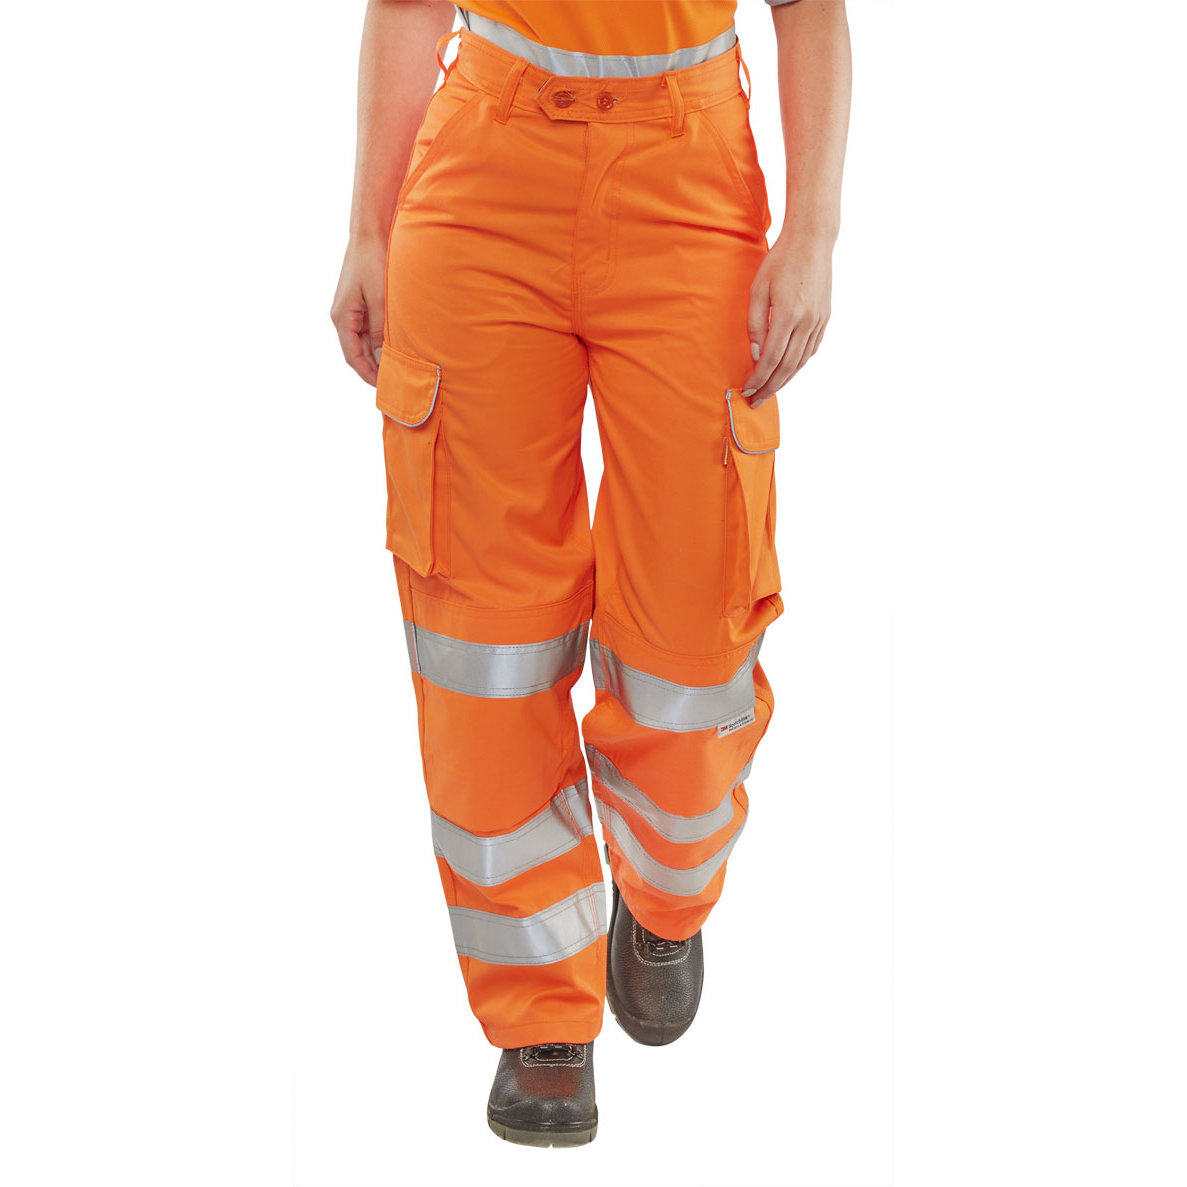 BSeen Rail Spec Trousers Ladies Teflon Hi-Vis Reflective Orange 28 Ref LRST28 *Up to 3 Day Leadtime*